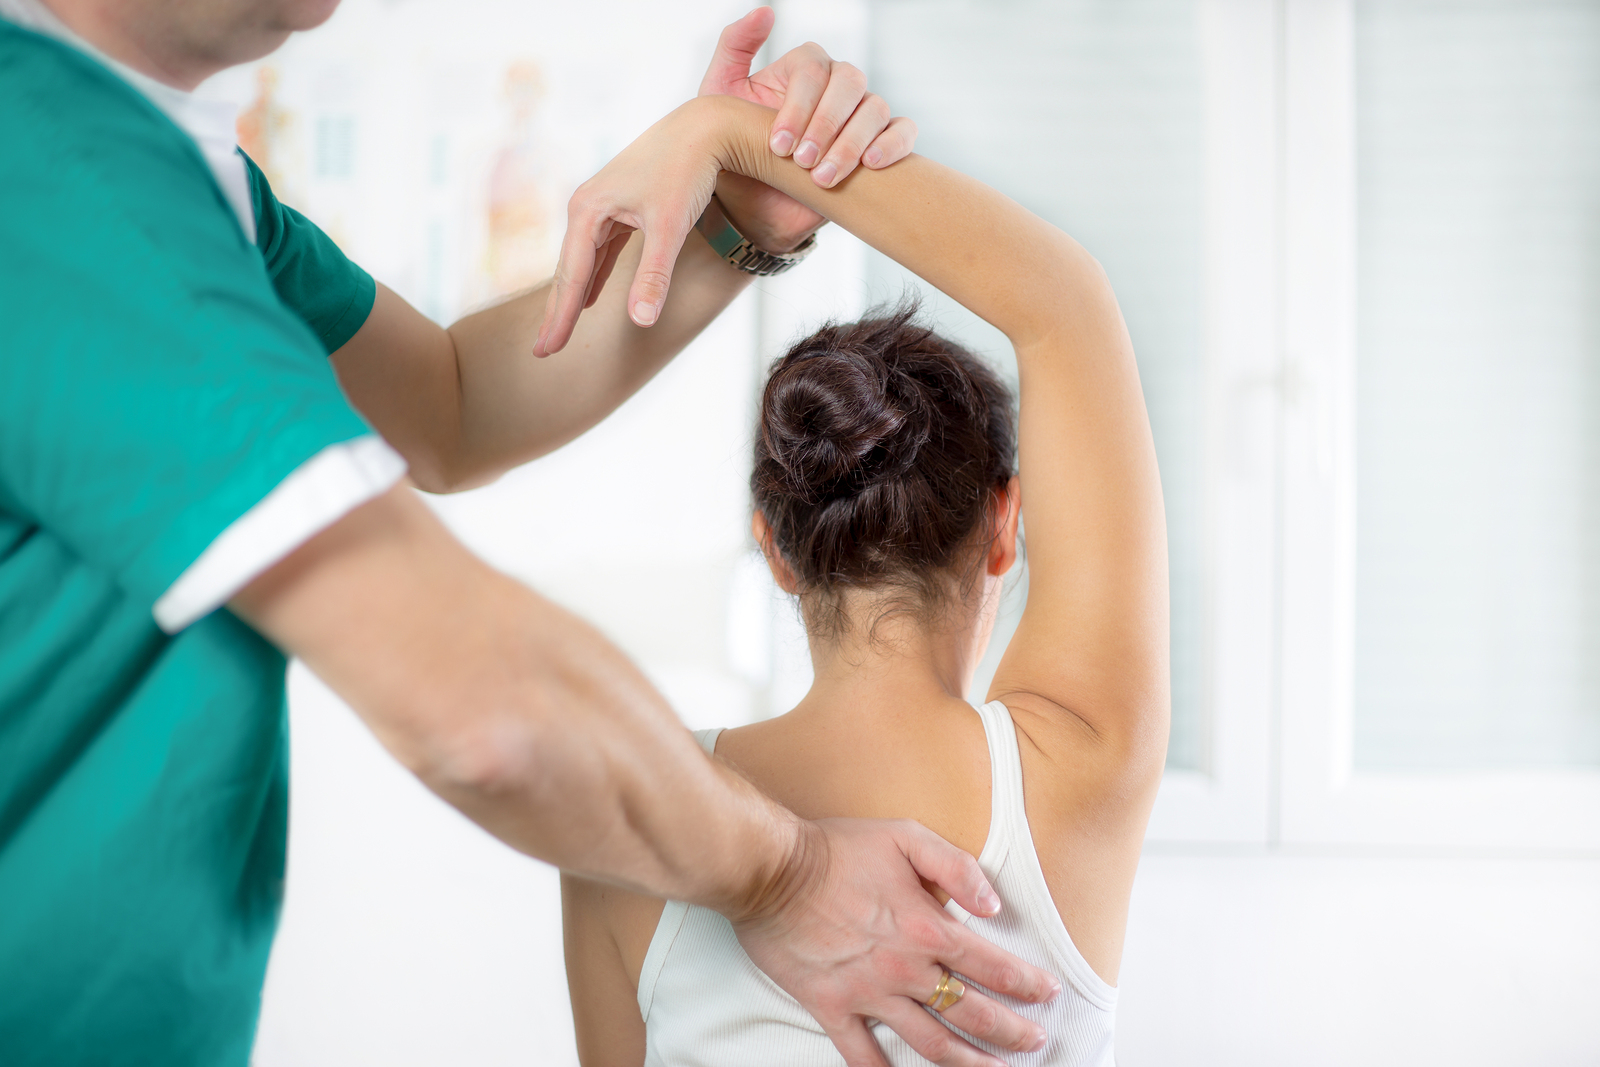 If you need chiropractic services for pain relief or wellness look no further. Learn about the variety of services at our Sarasota chiropractor; call now!